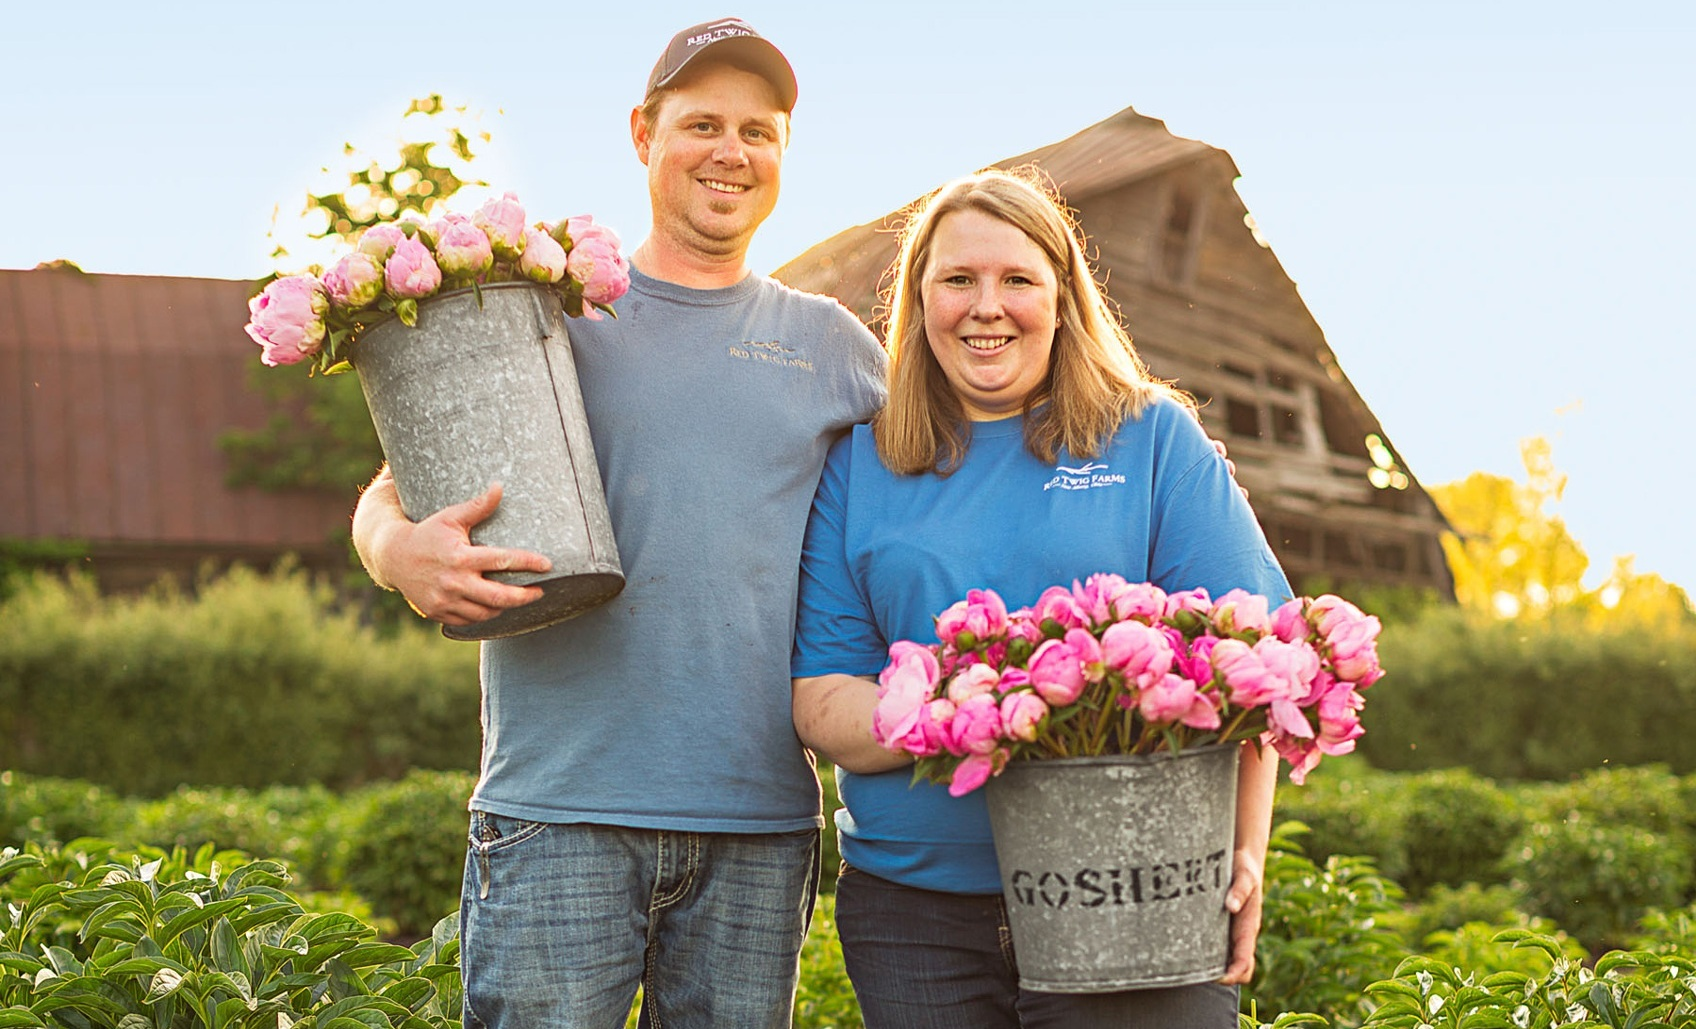 BRINGING BACK FARMING, CUT FLOWER STYLE - —Welcome to the Red Twig Farms! We are located in Central Ohio in New Albany. We are a small family owned and operated cut flower and branch farm. In the Spring we are in the fields morning til night harvesting Ranunculus, Tulips, Daffodils, Anemones and Peony flowers. Fall we are harvesting dogwood, willow and Ilex branches in a variety of color and textures for holiday containers and decor.Red Twig Farms started in 2010, after the family bought 9 acres across Jug Street from the family landscape nursery. The land hadn't been farmed for two decades. We saw an opportunity. What exactly that opportunity was had yet to unfurl, but it was definitely horticulture with our background.Red Twig Farms took time to get up and running. Peonies take 3 to 5 years to mature before you can harvest. We now produce over 28 varieties of peonies!We want our product to be consistent so our local customers continue to do purchase from us with confidence.Red Twig Farms is owned and operated by Josh & Lindsey McCullough.